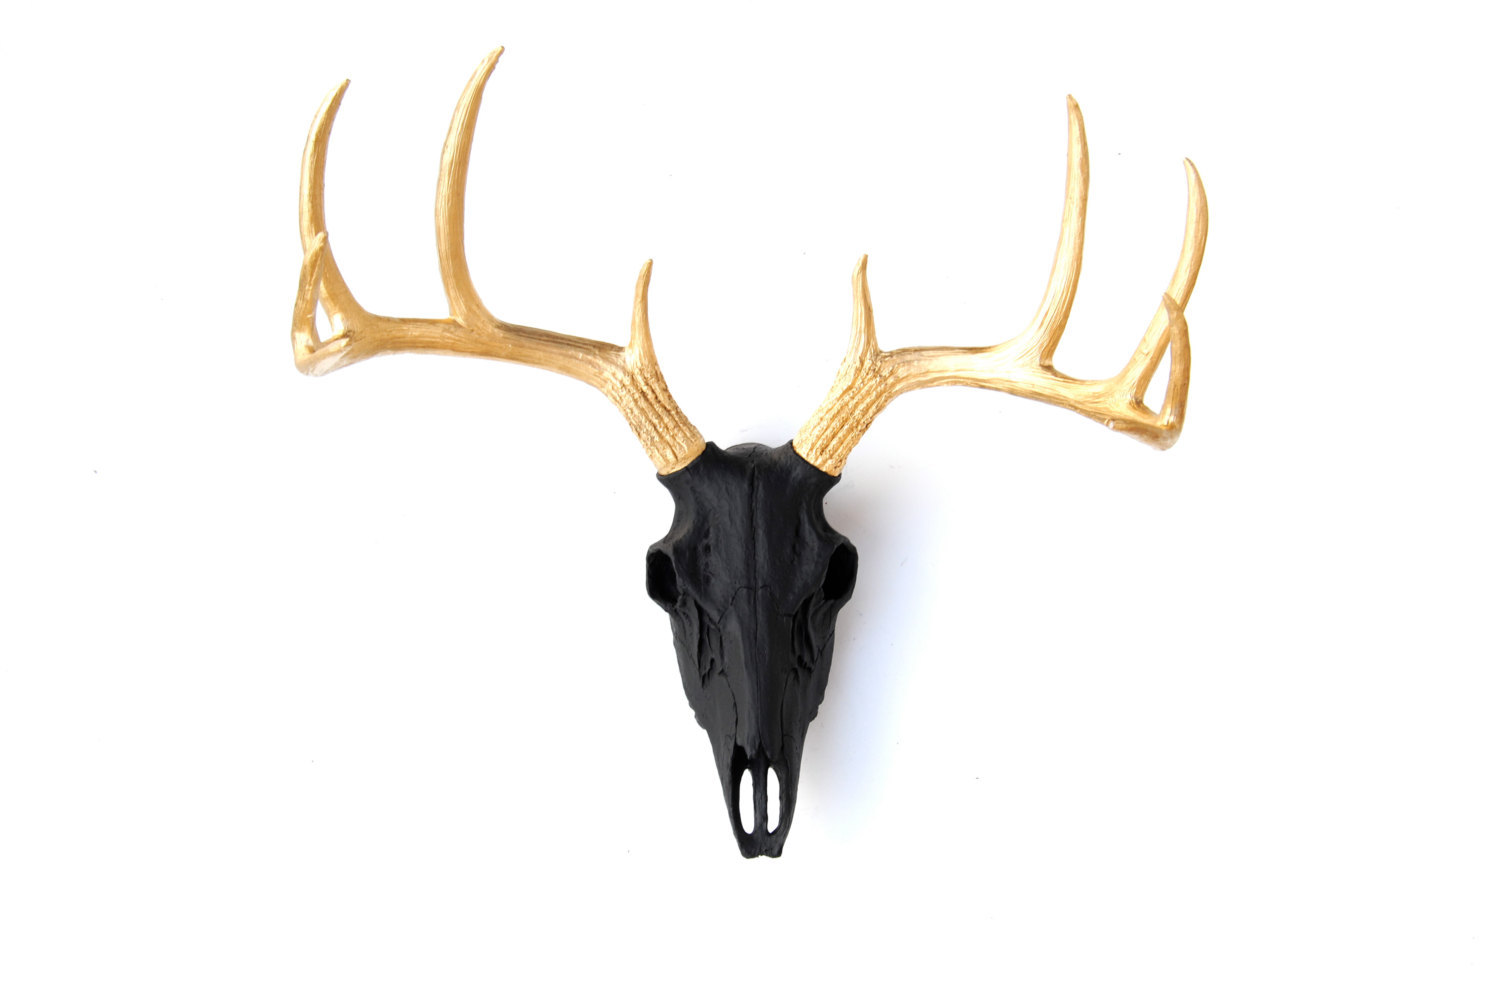 Fake Deer Skull And Antlers Faux Taxidermy Black Deer Skull Gold Antlers Wall